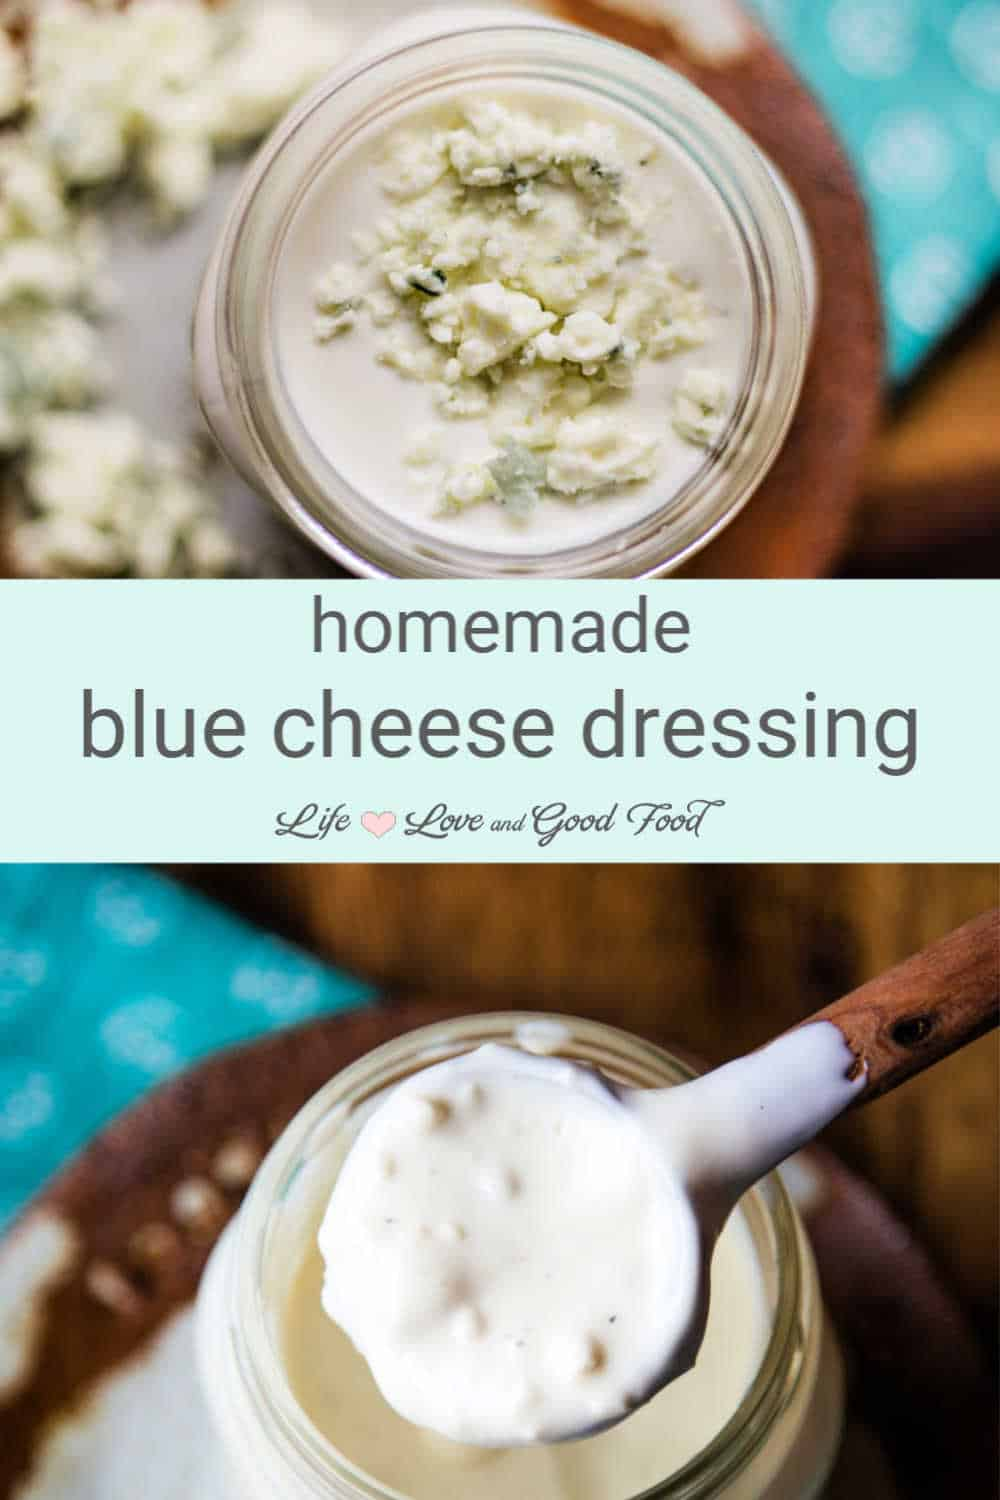 Homemade Blue Cheese Dressing with Buttermilk and chunky blue cheese is not only better than store-bought, it has less than half the calories, too. Ladle this delicious dressing on a classic wedge salad, use it as a dipping sauce for Buffalo wings, or on garden salads.